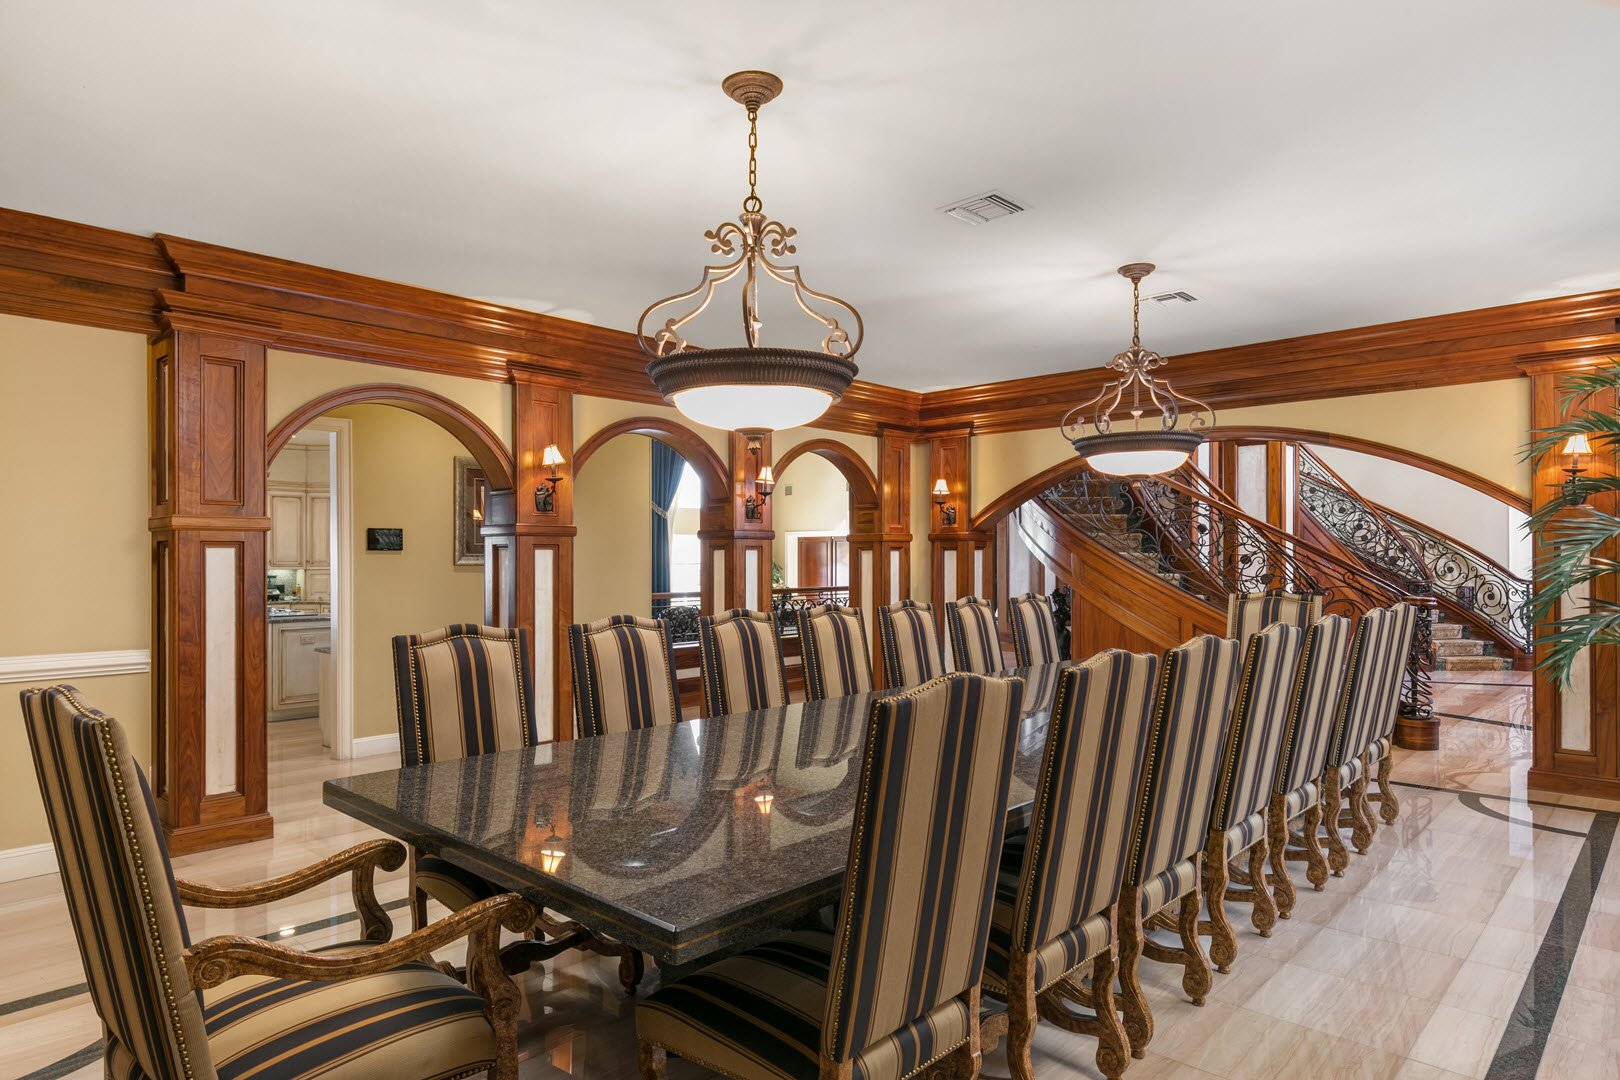 Shaquille Oneal Mansion In Florida For Sale- Dining Room